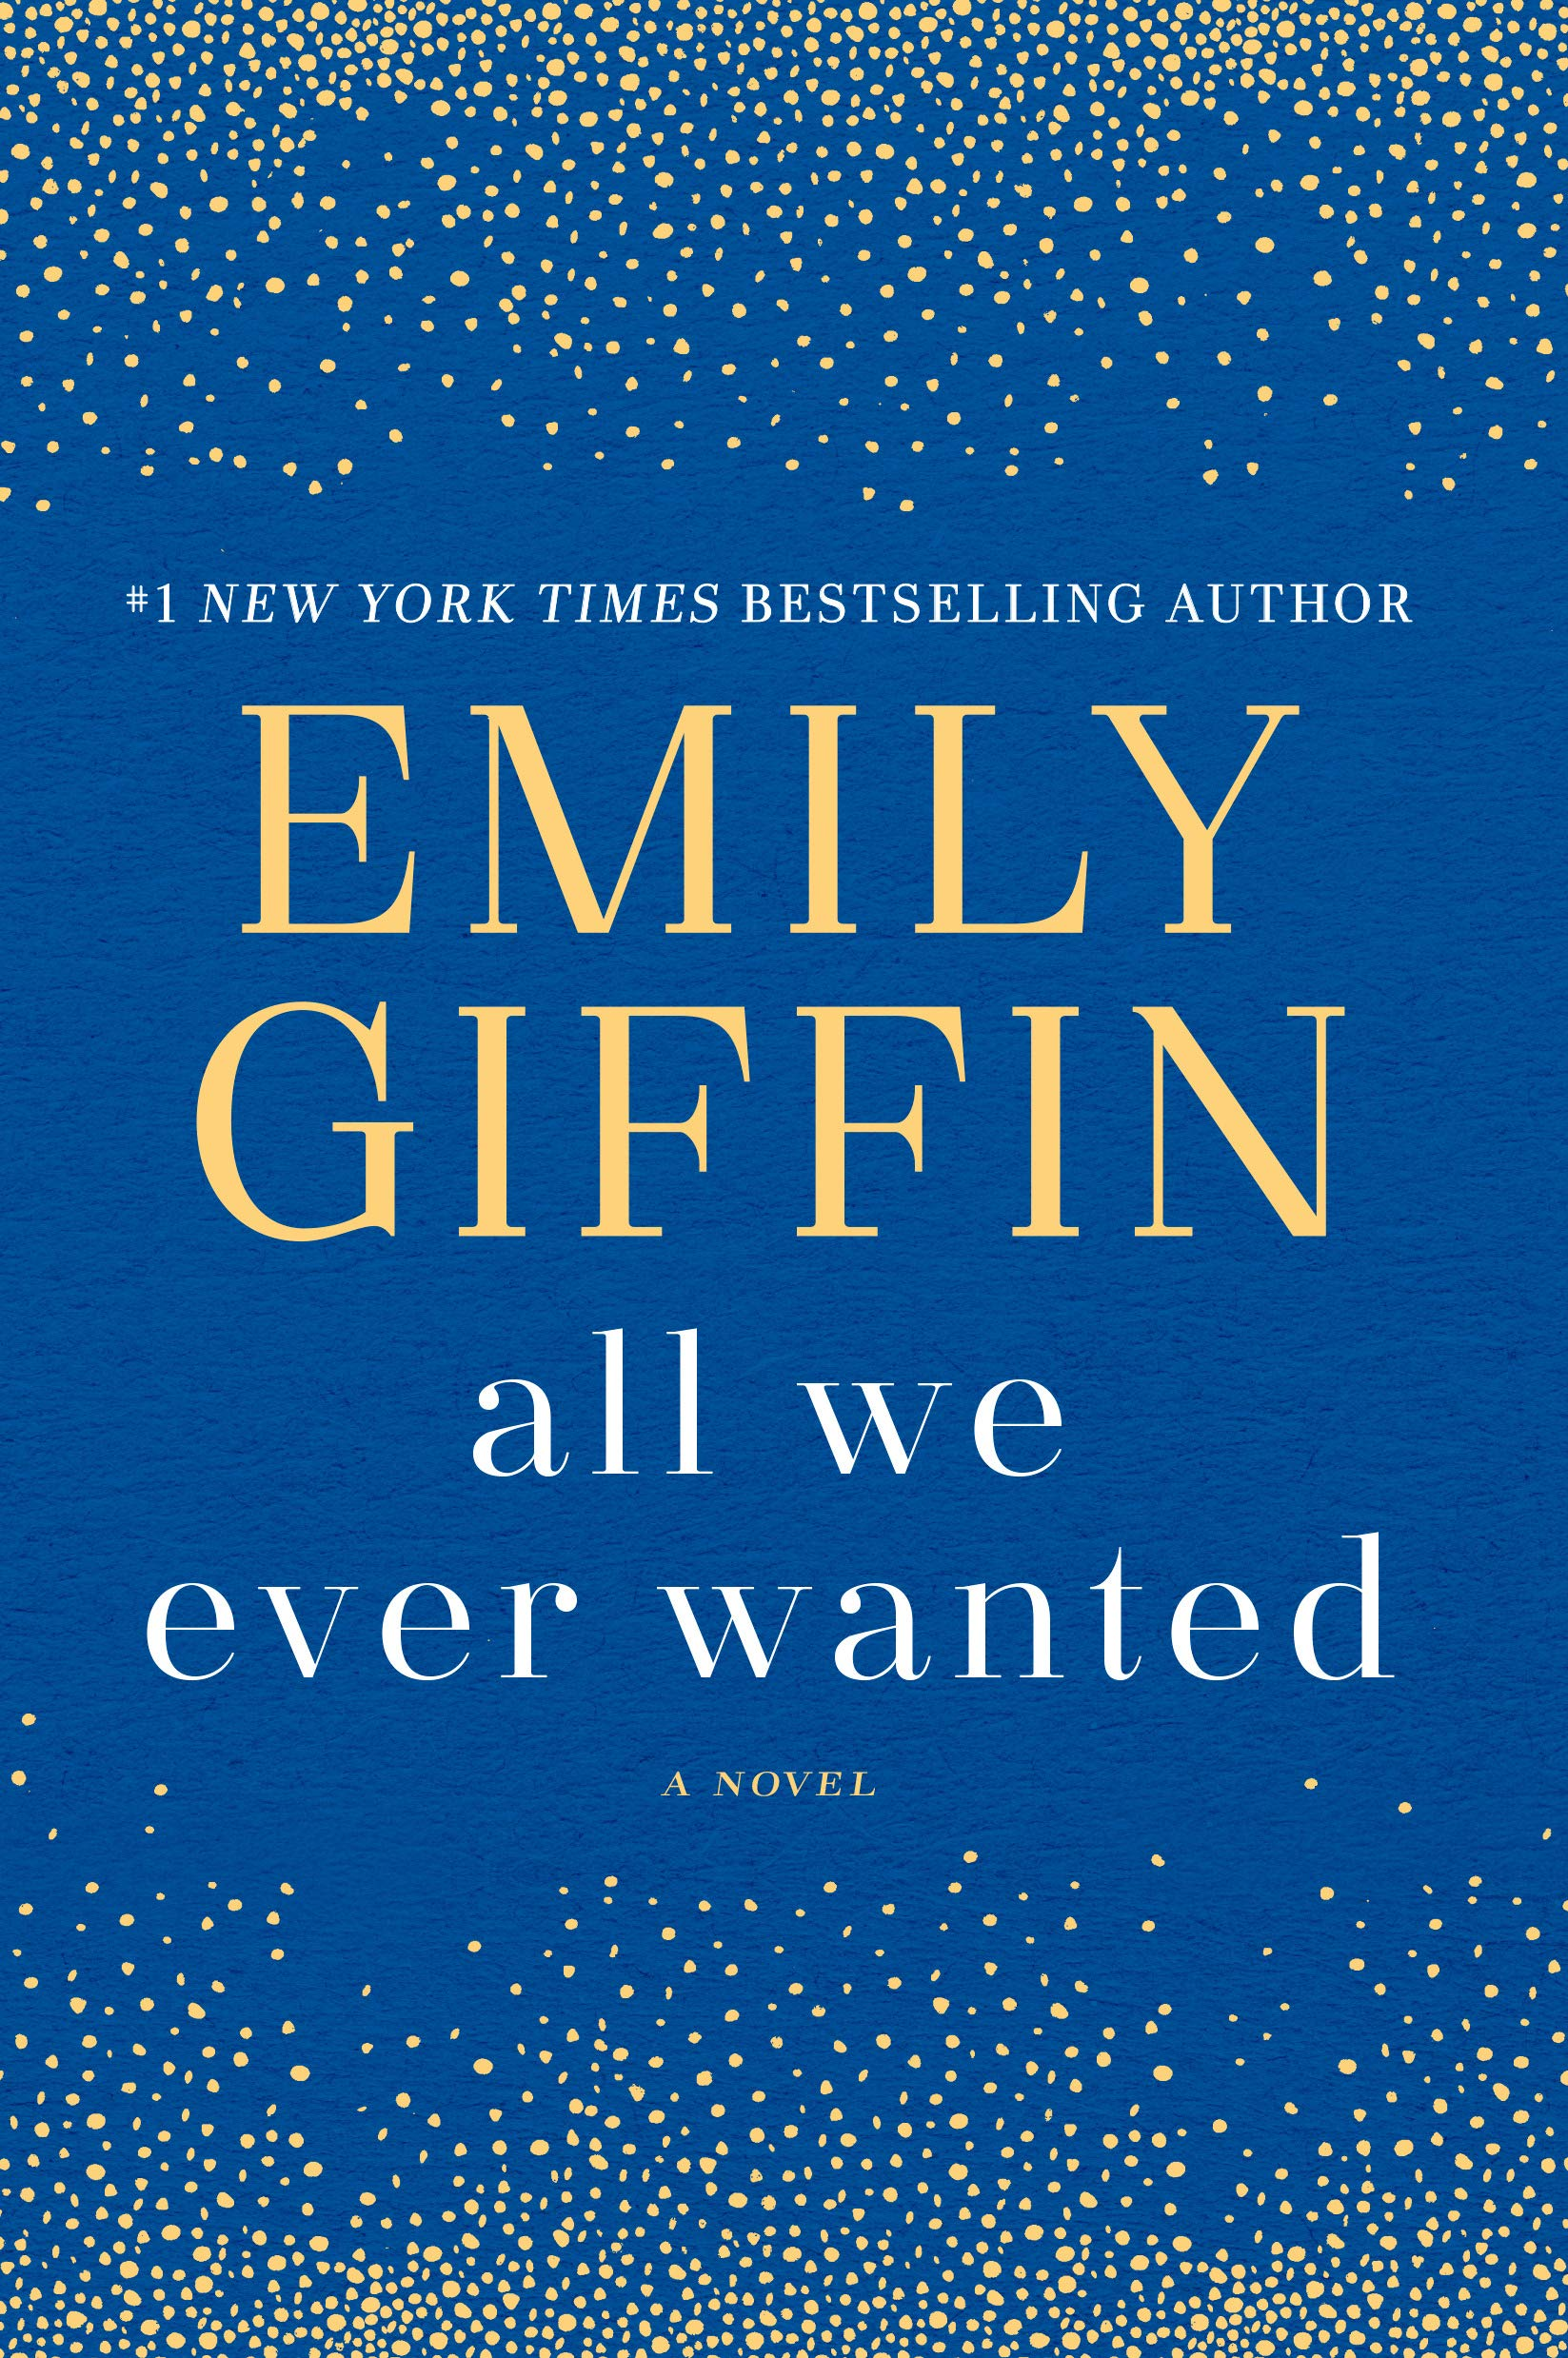 All We Ever Wanted Novel